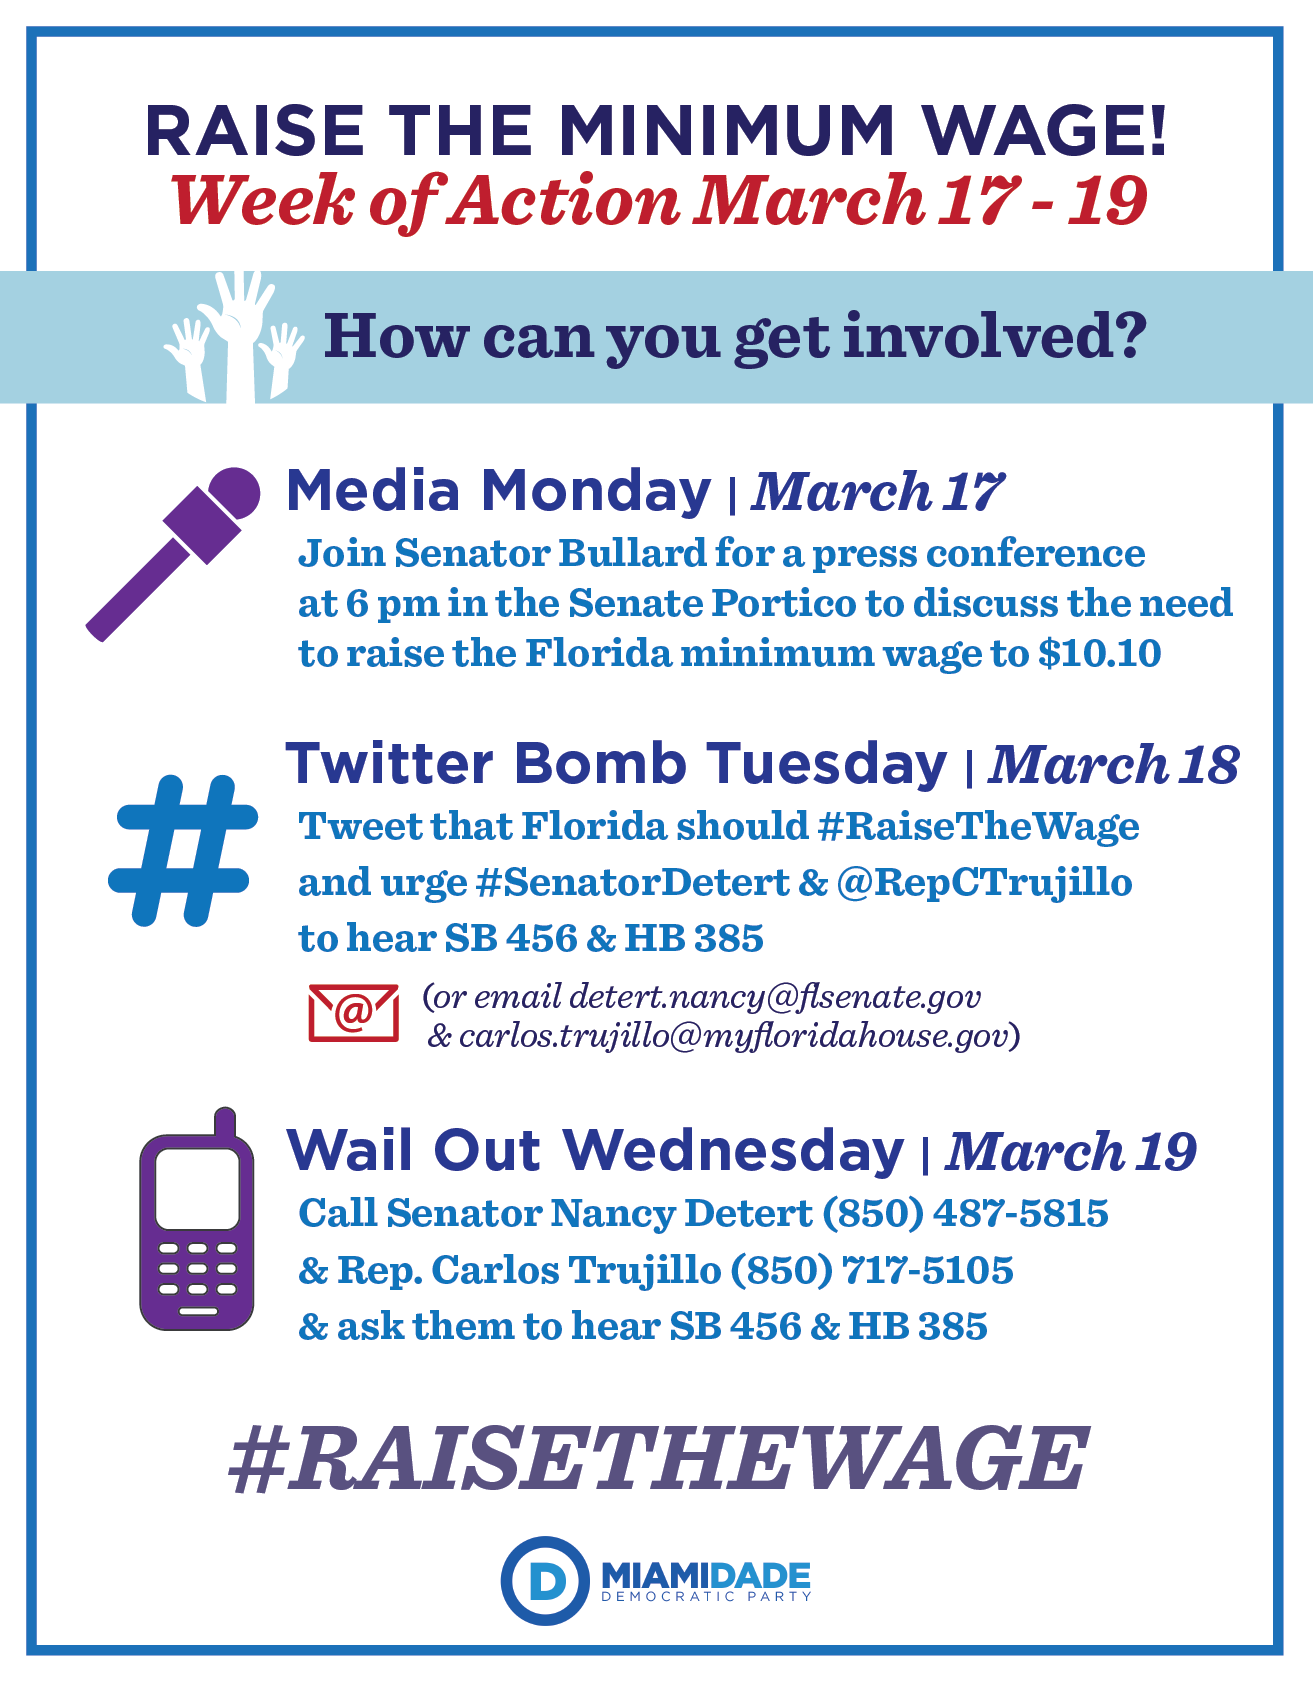 Min_Wage_Week_of_Action_NEW.png